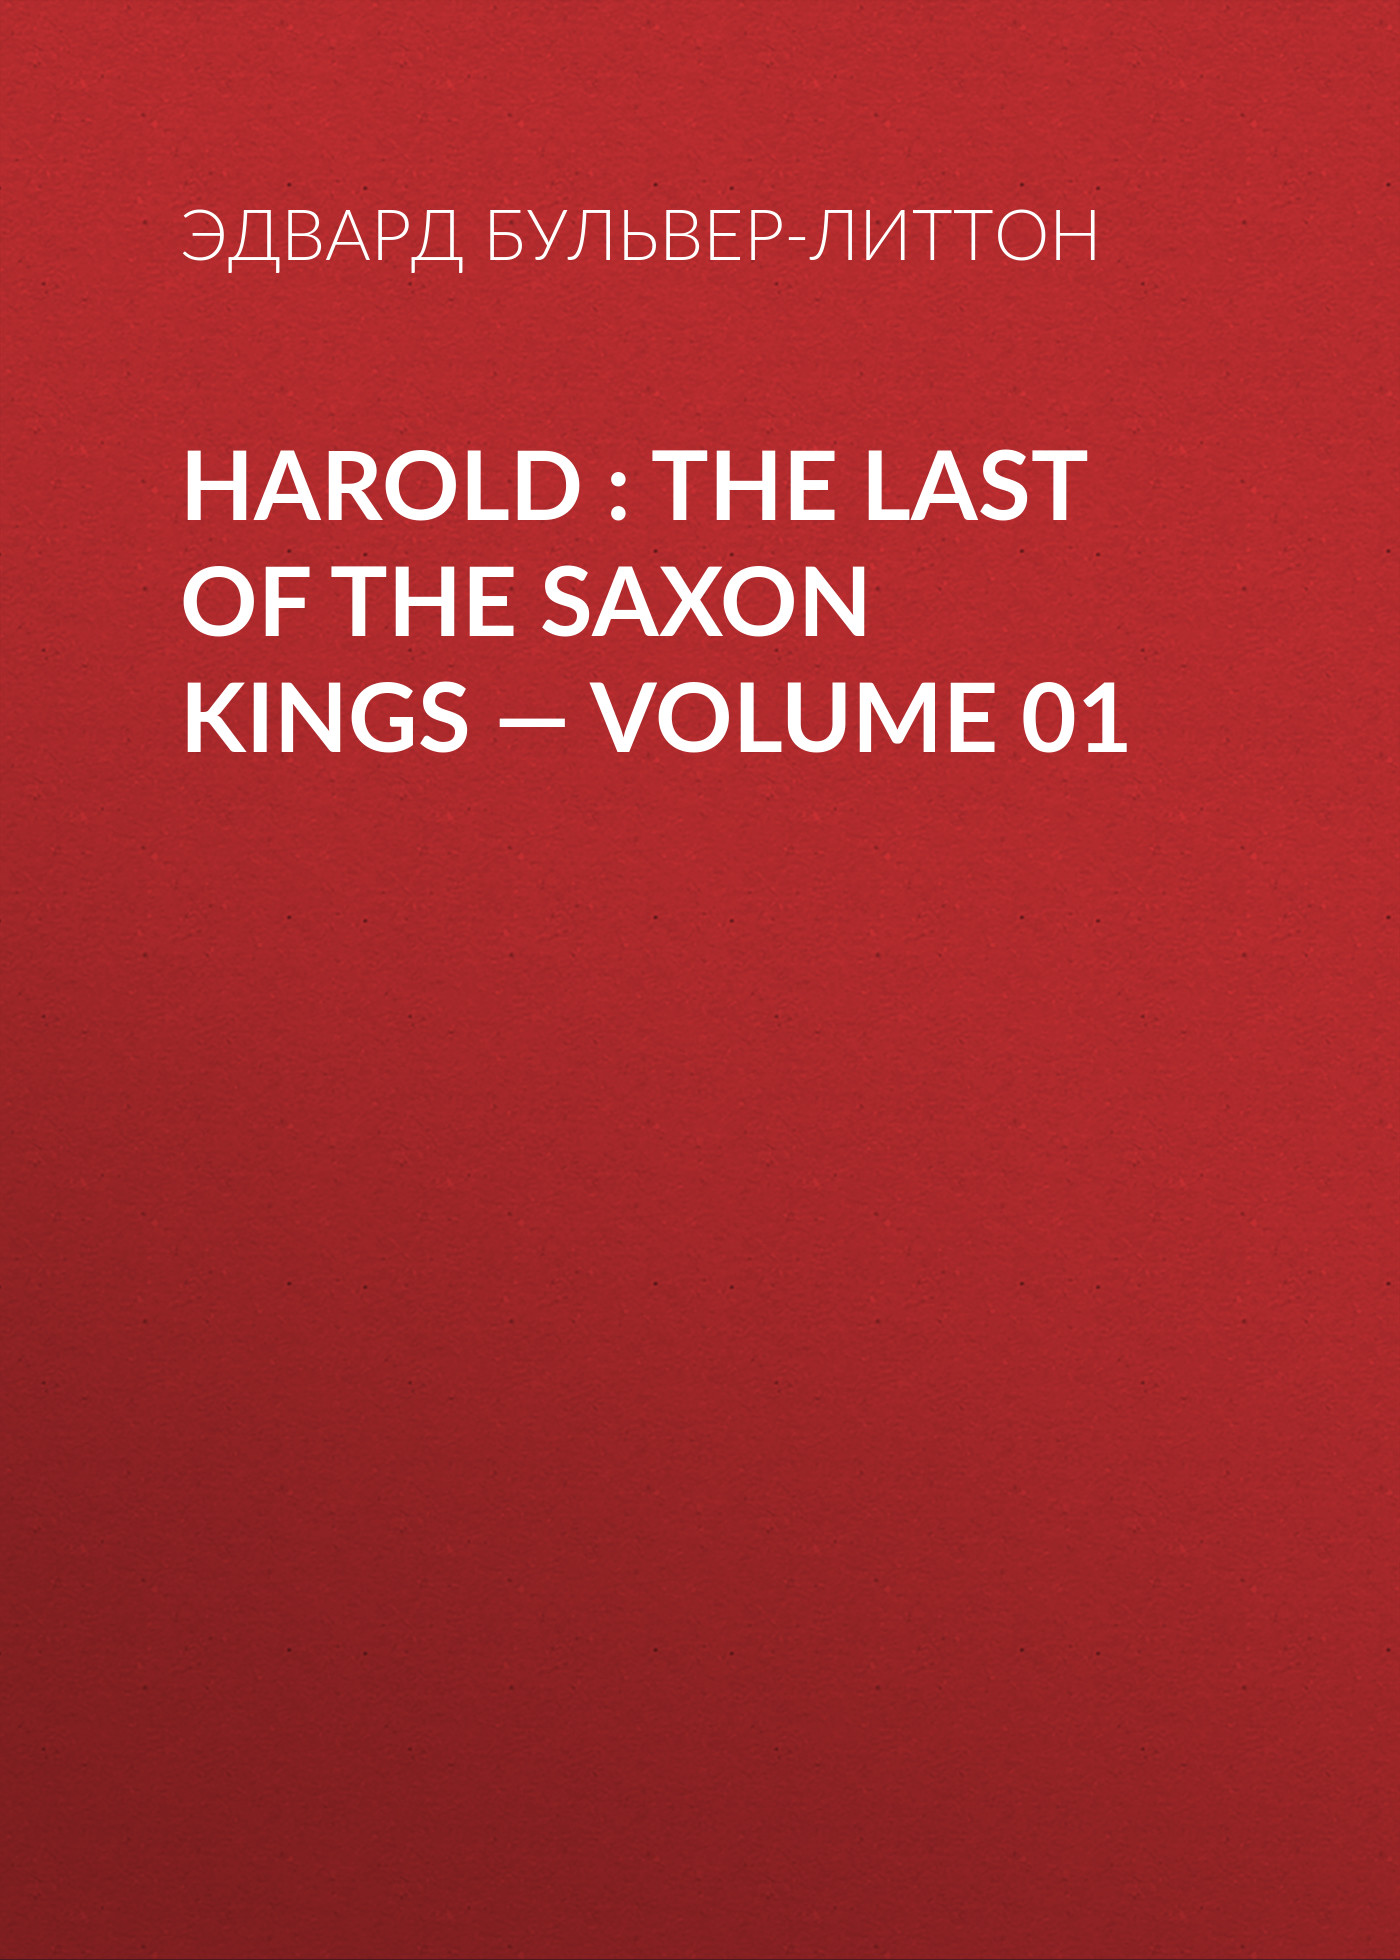 Эдвард Бульвер-Литтон Harold : the Last of the Saxon Kings — Volume 01 эдвард бульвер литтон harold the last of the saxon kings volume 06